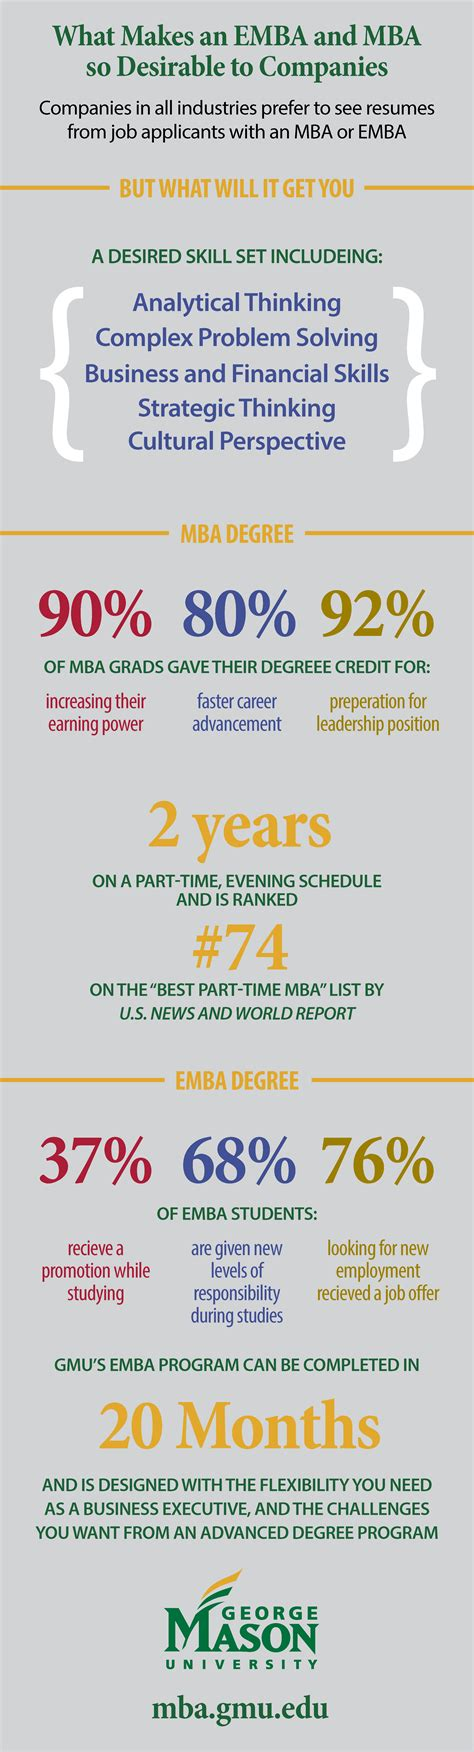 George Mba Program Ranking by What Makes An Emba Mba So Desirable To Companies